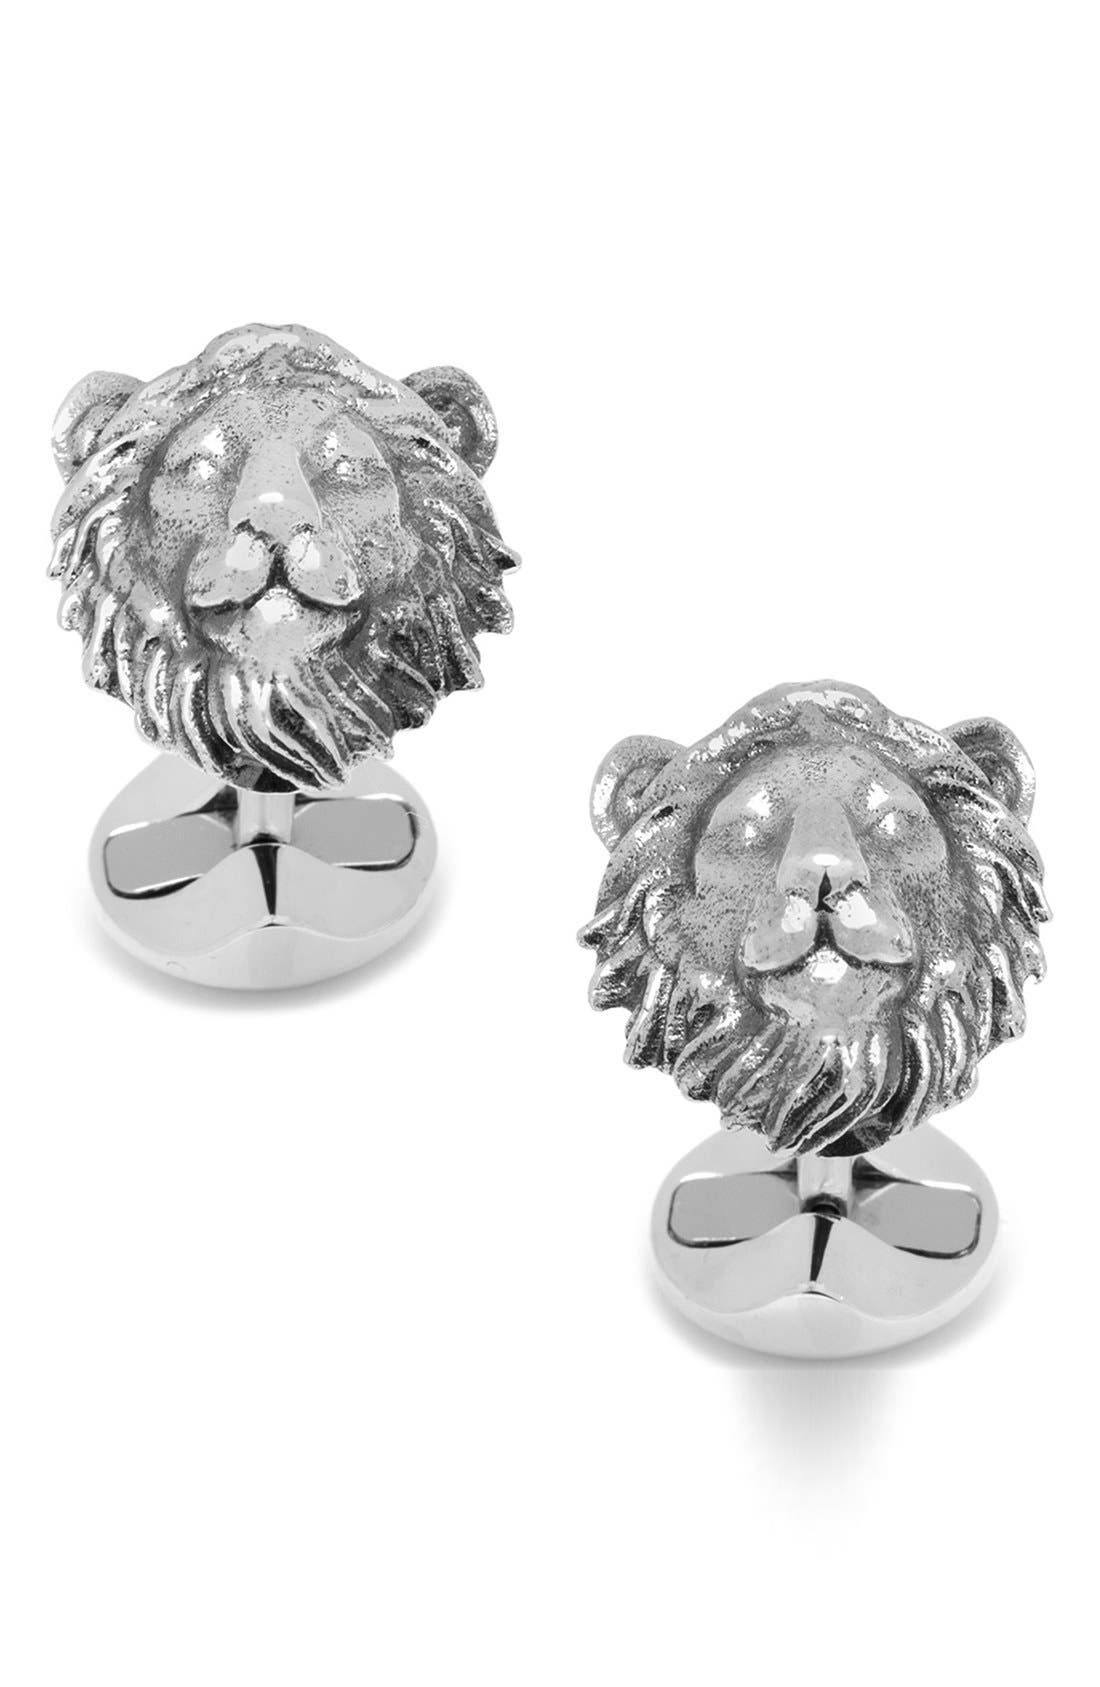 OX AND BULL TRADING CO. Lion Head Cuff Links